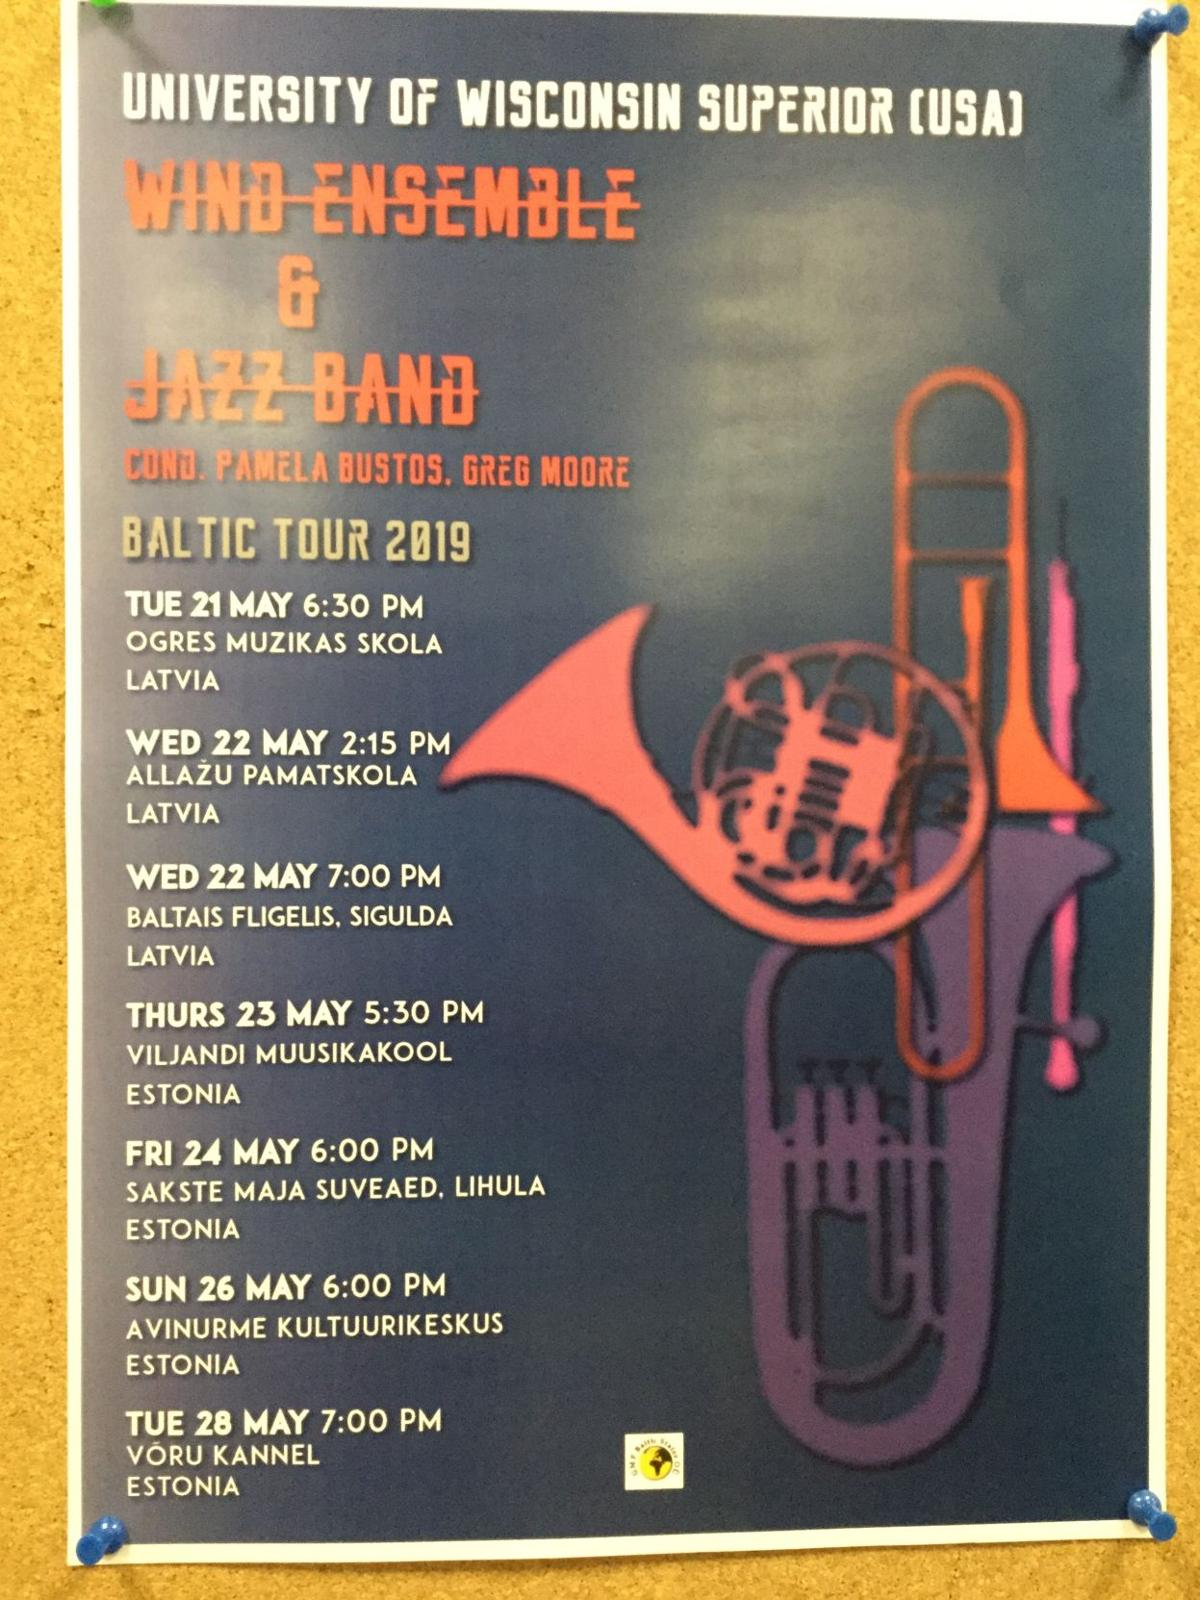 Official Performance Schedule Poster.JPG